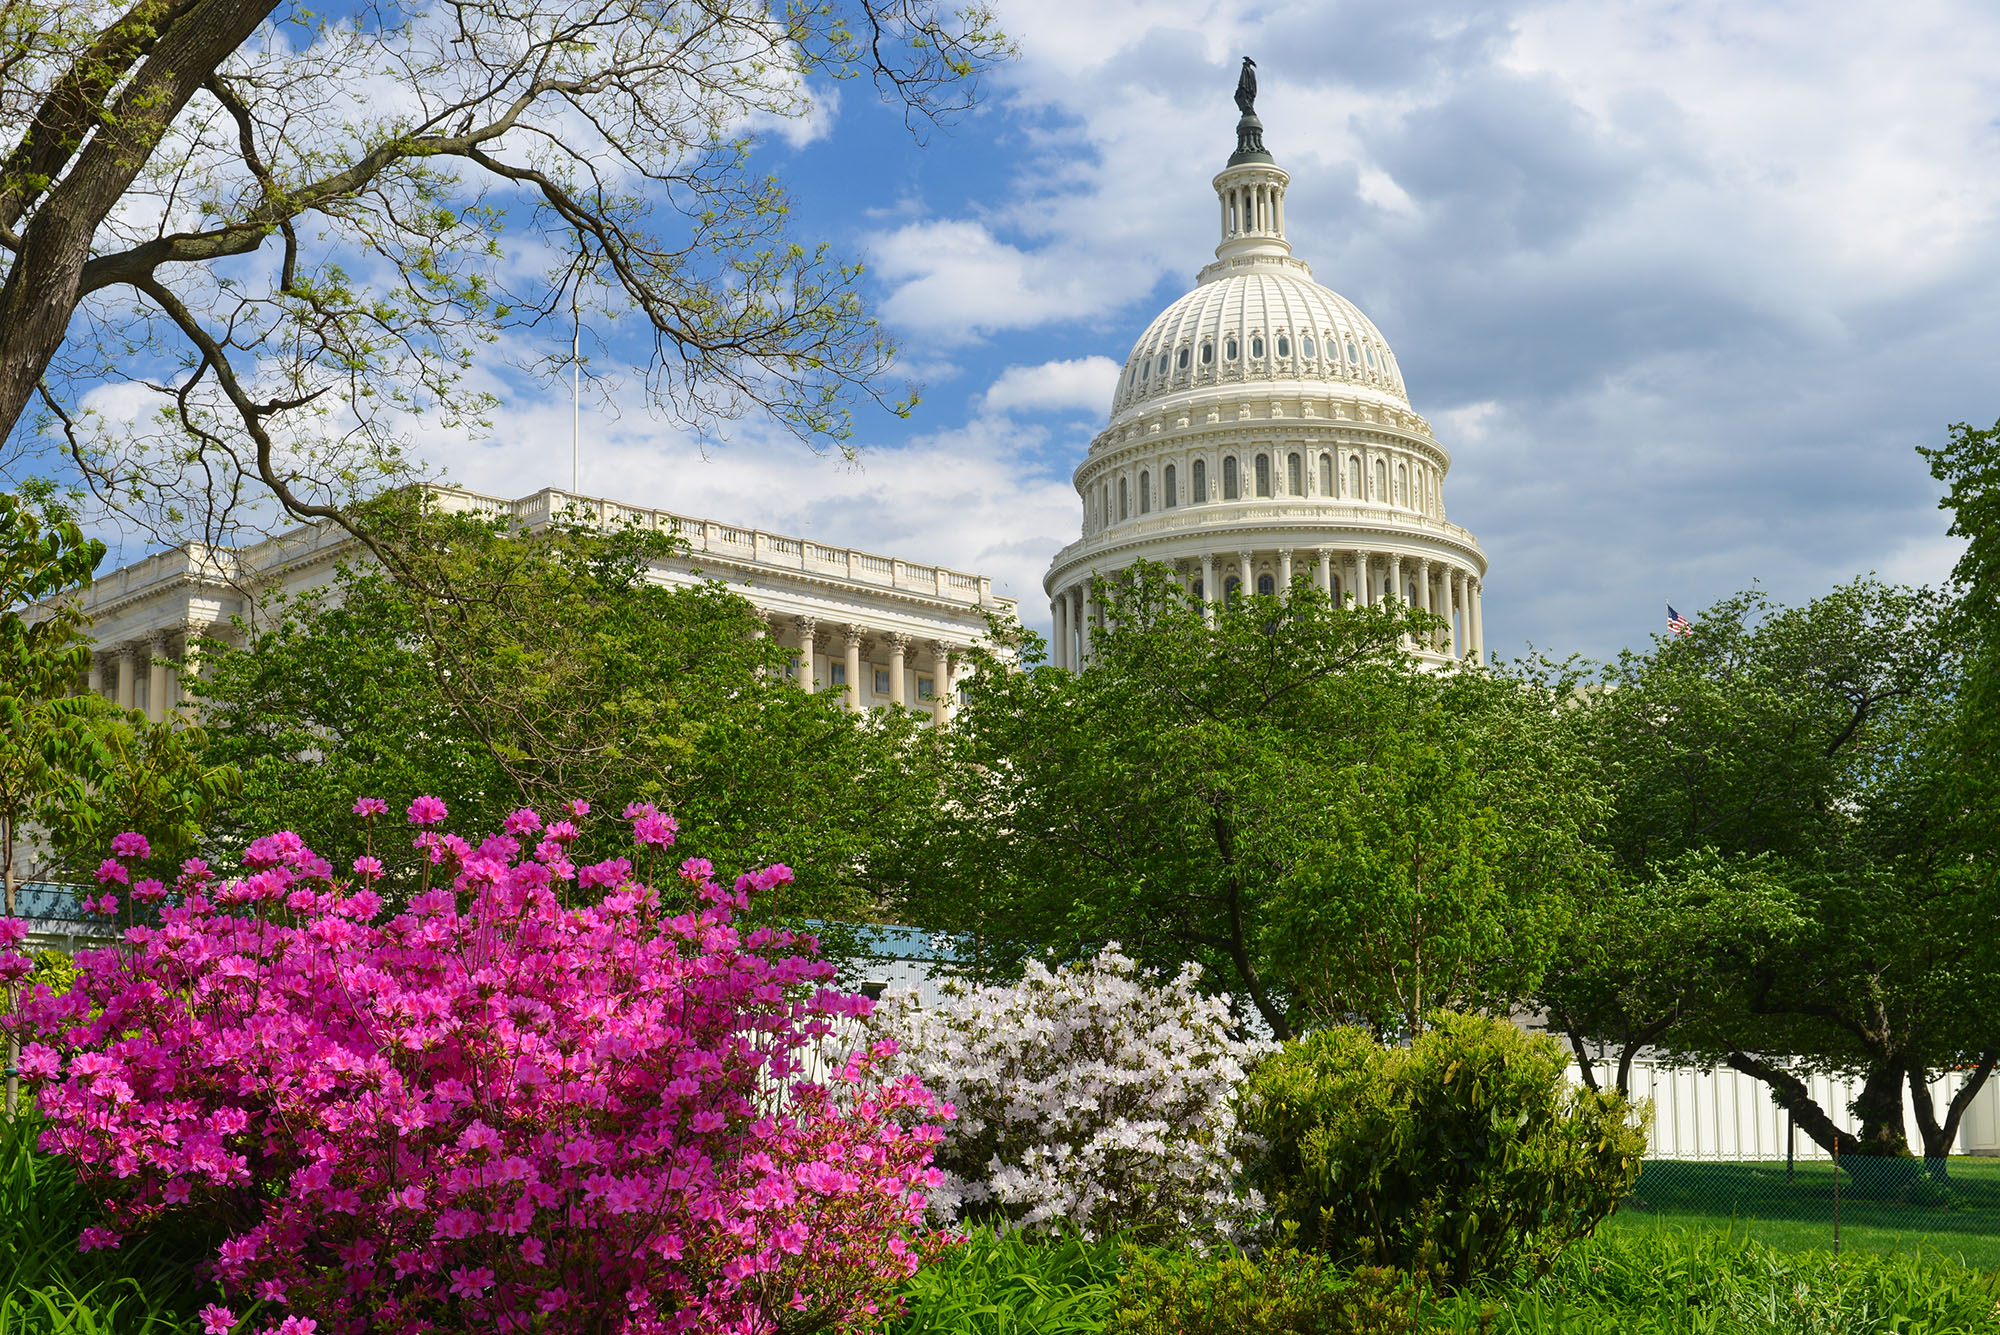 Capitol building in Washington DC behind green trees and purple and white flowering bushes